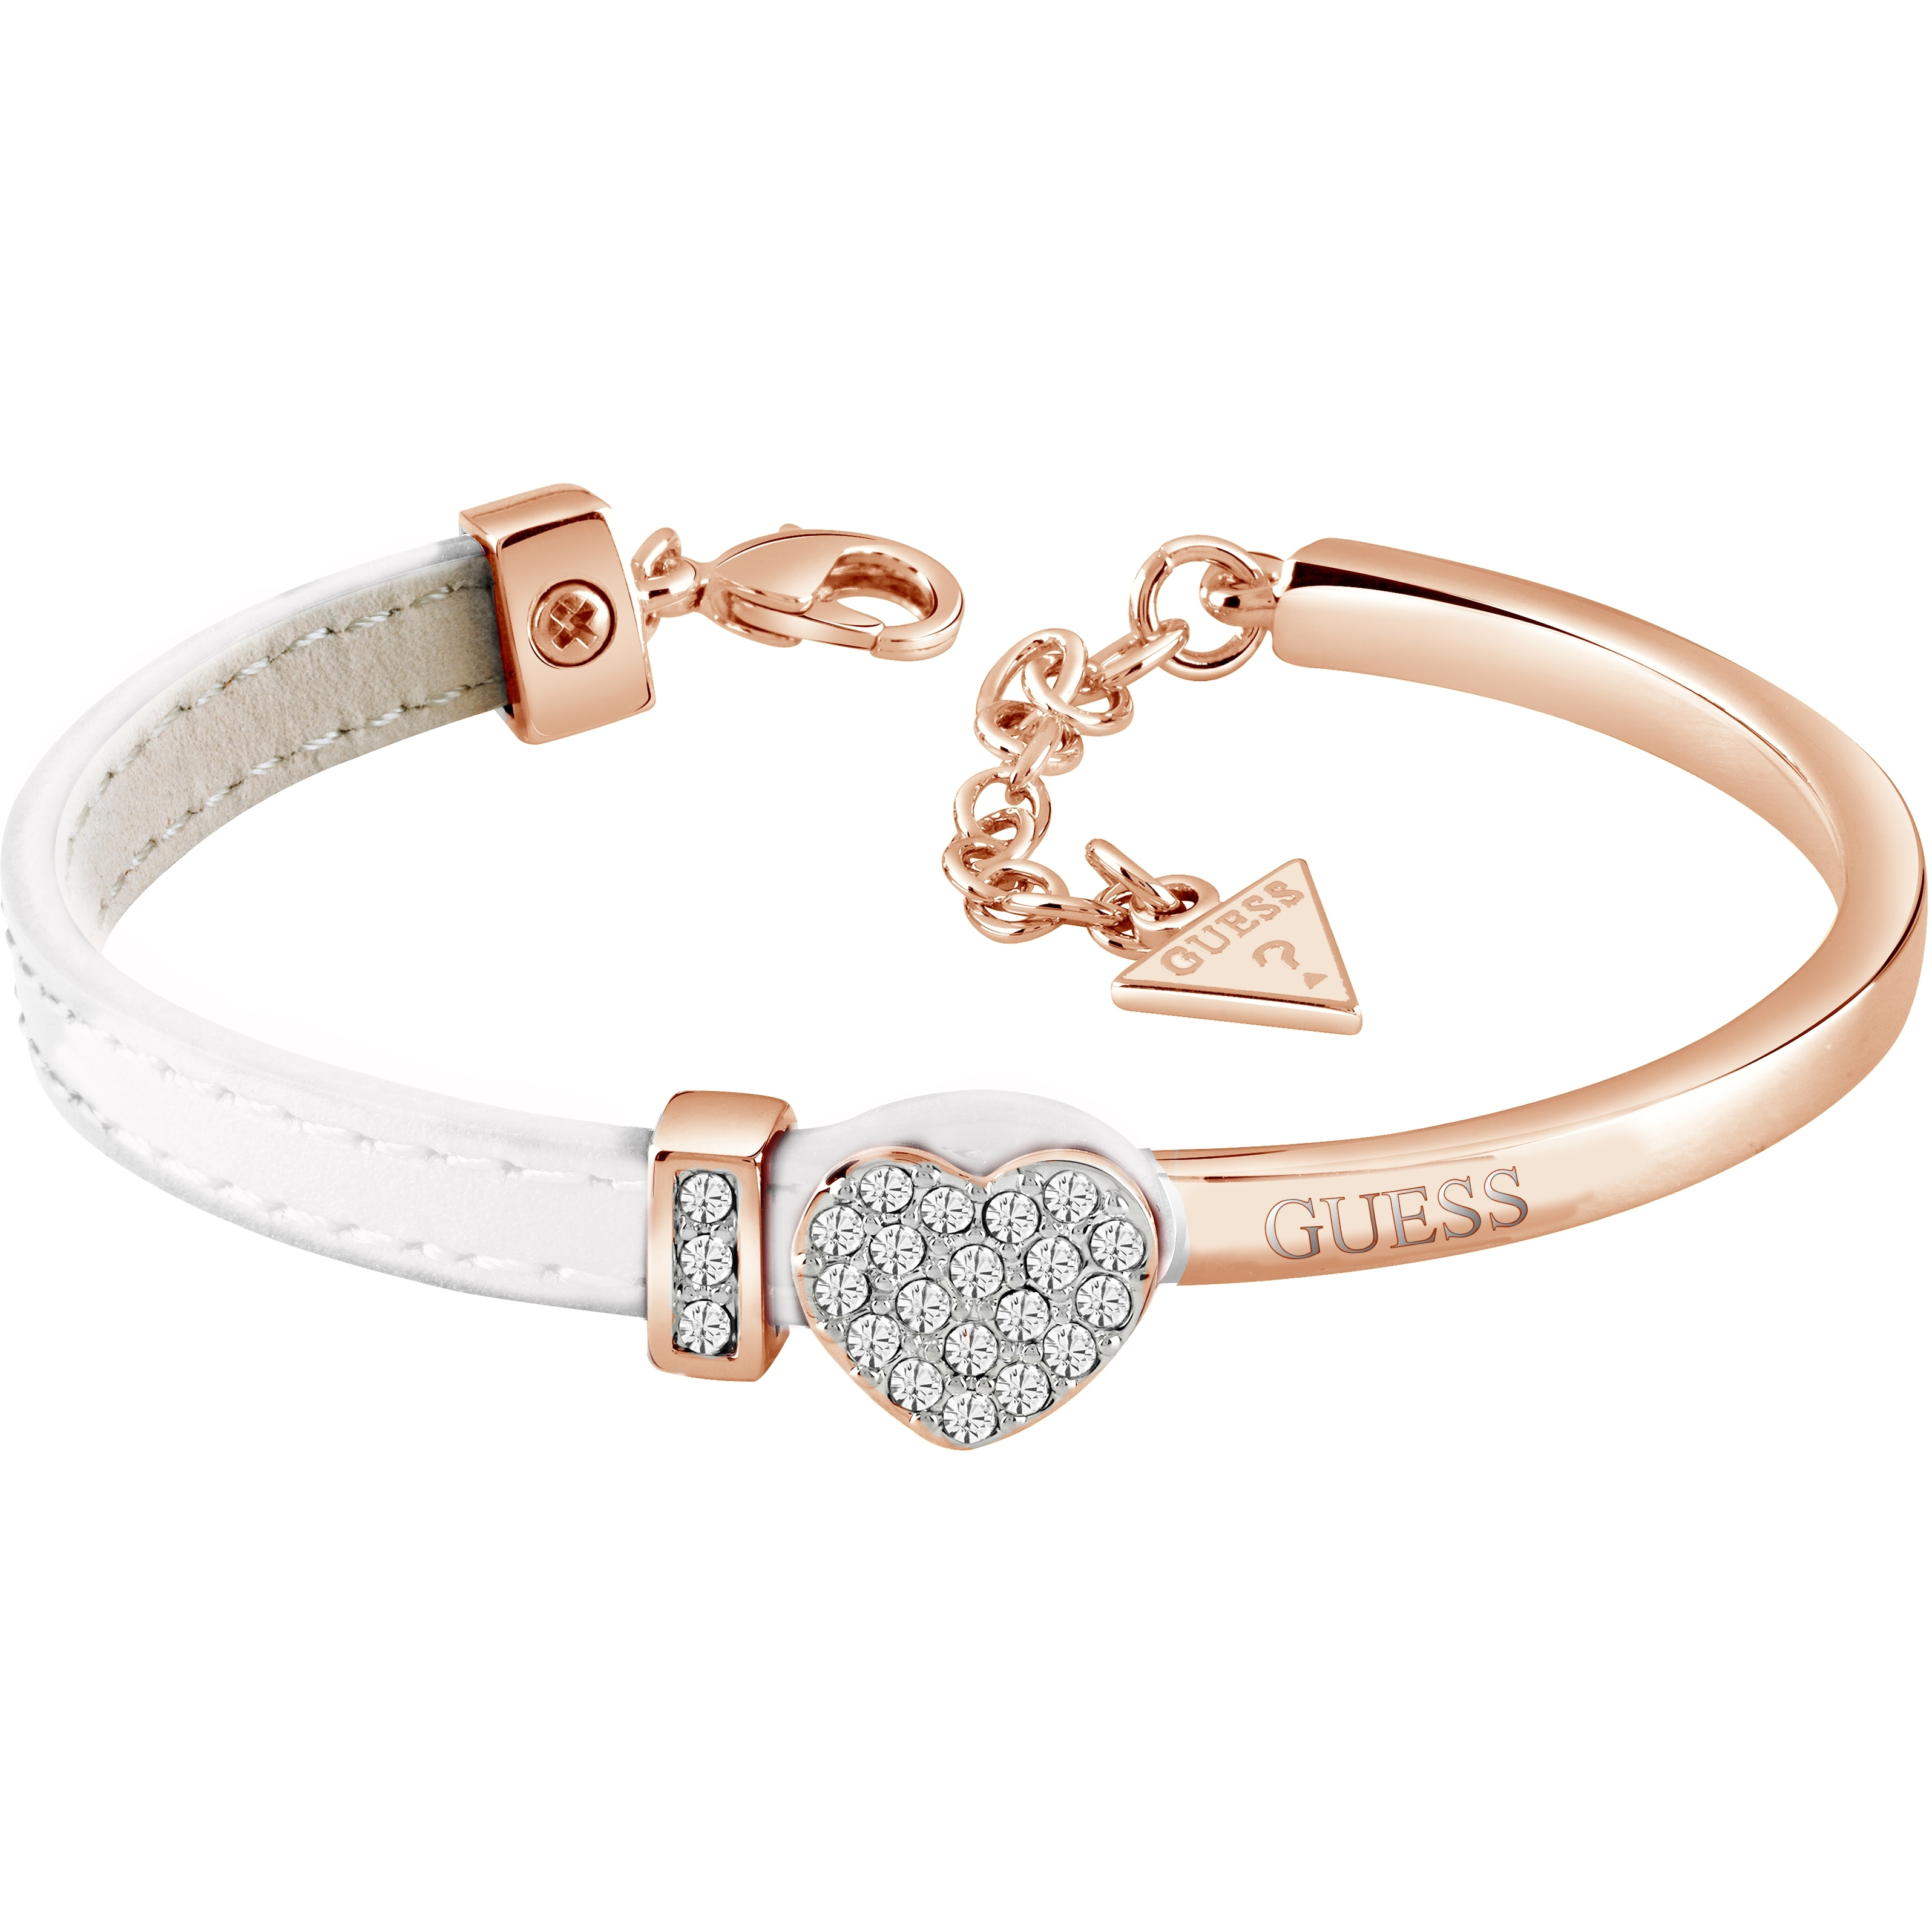 2bfd61b5e GUESS rose gold plated bangle with half white leather Swarovski® crystal  set heart bracelet with GUESS detail, presented in a gift box.